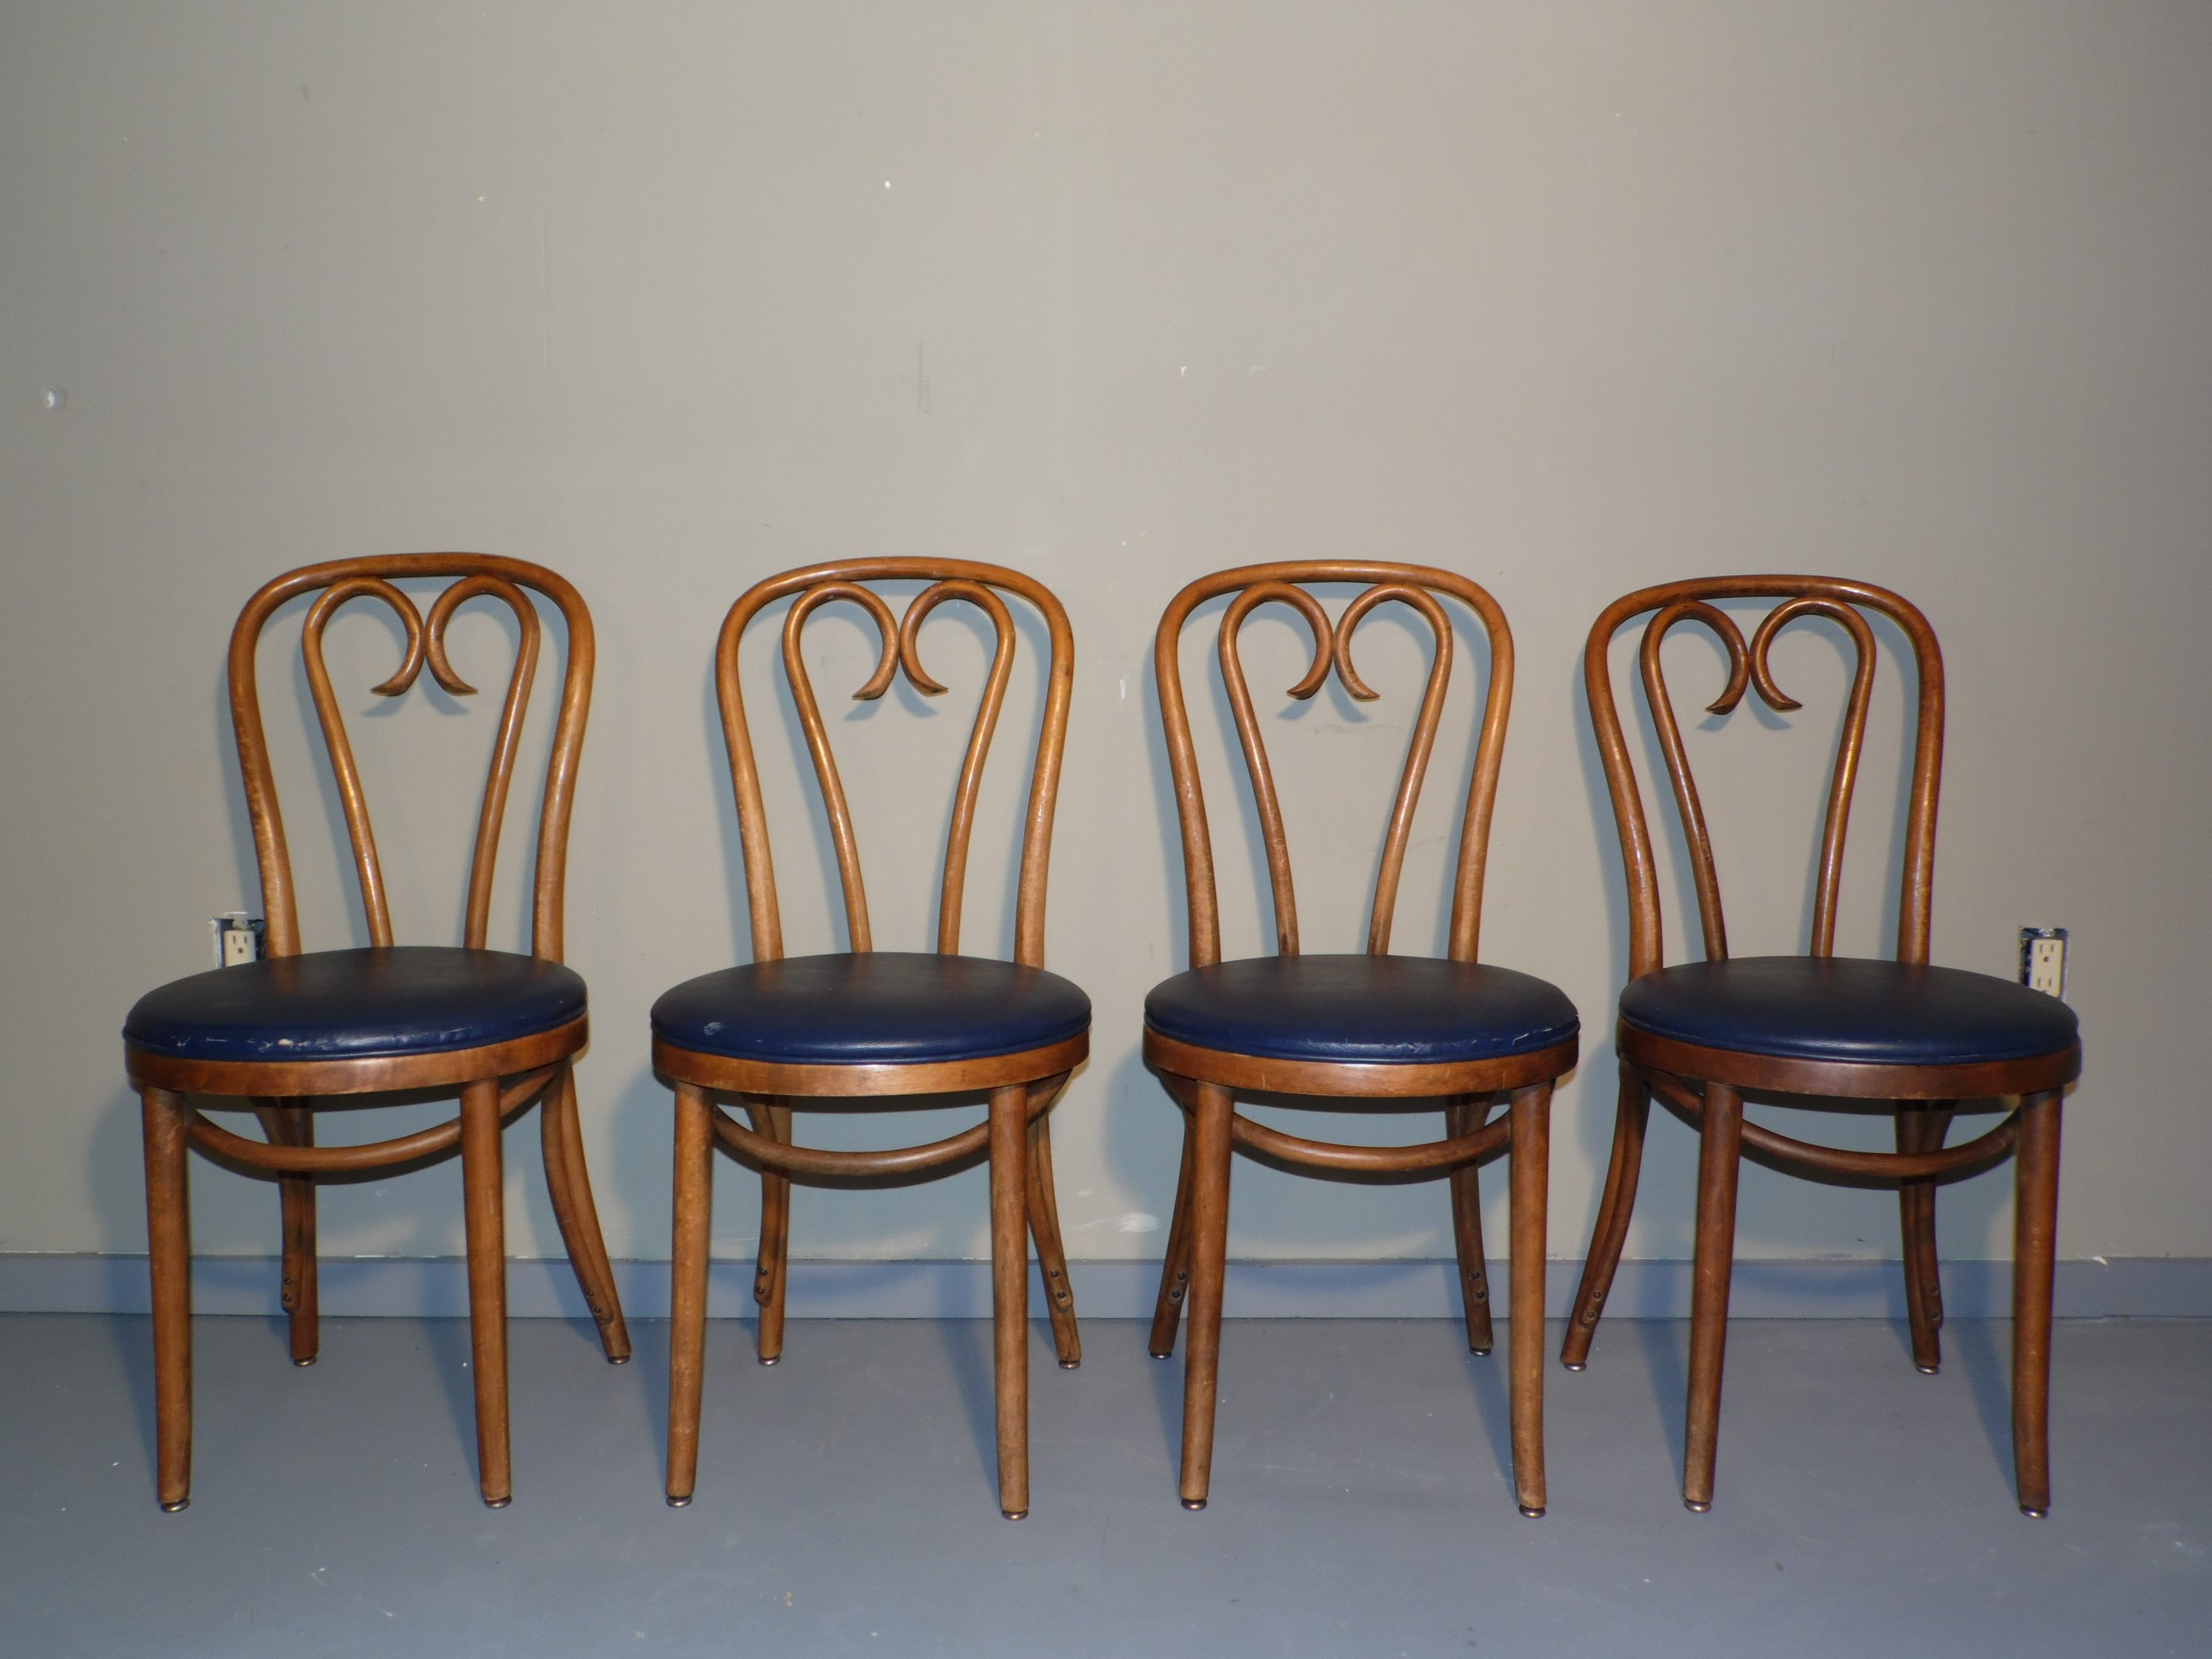 plastic bentwood bistro chairs chair cover rentals vancouver vintage set of 4 shelby williams dining cafe